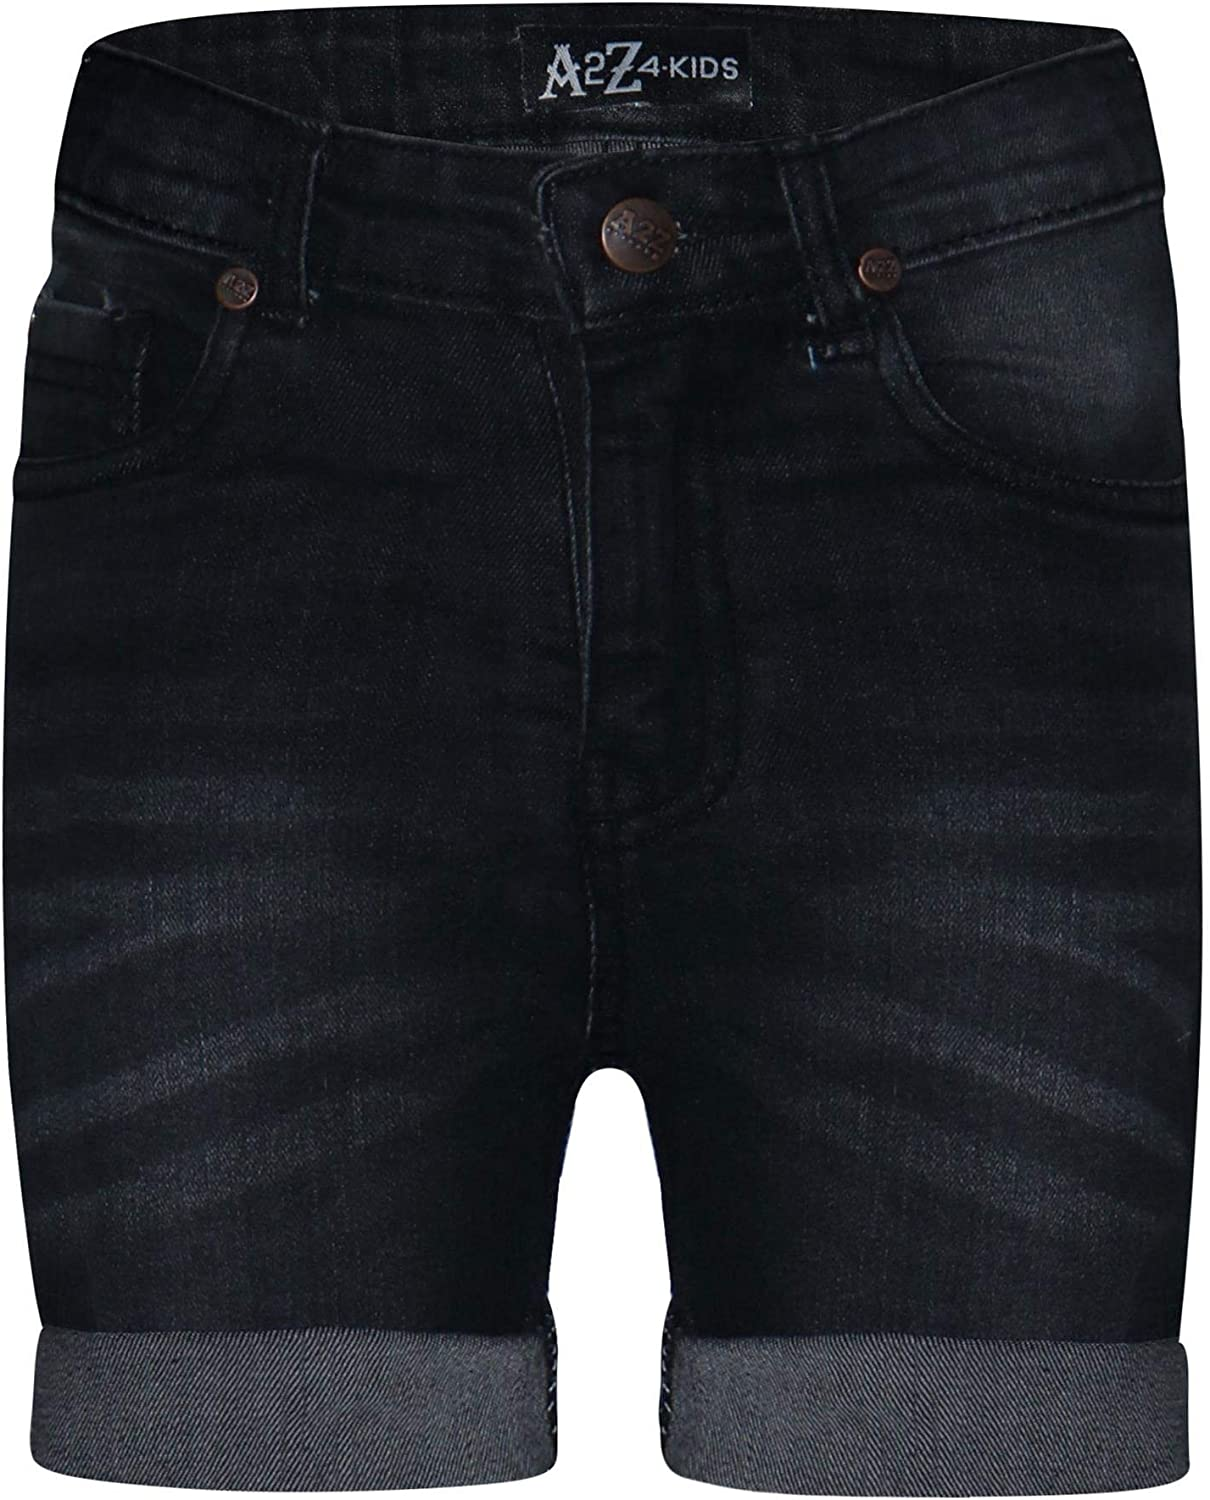 Kids Girls Shorts Bermuda Black Jeans Chin Denim Pant Summer Year-end annual account Hot Some reservation